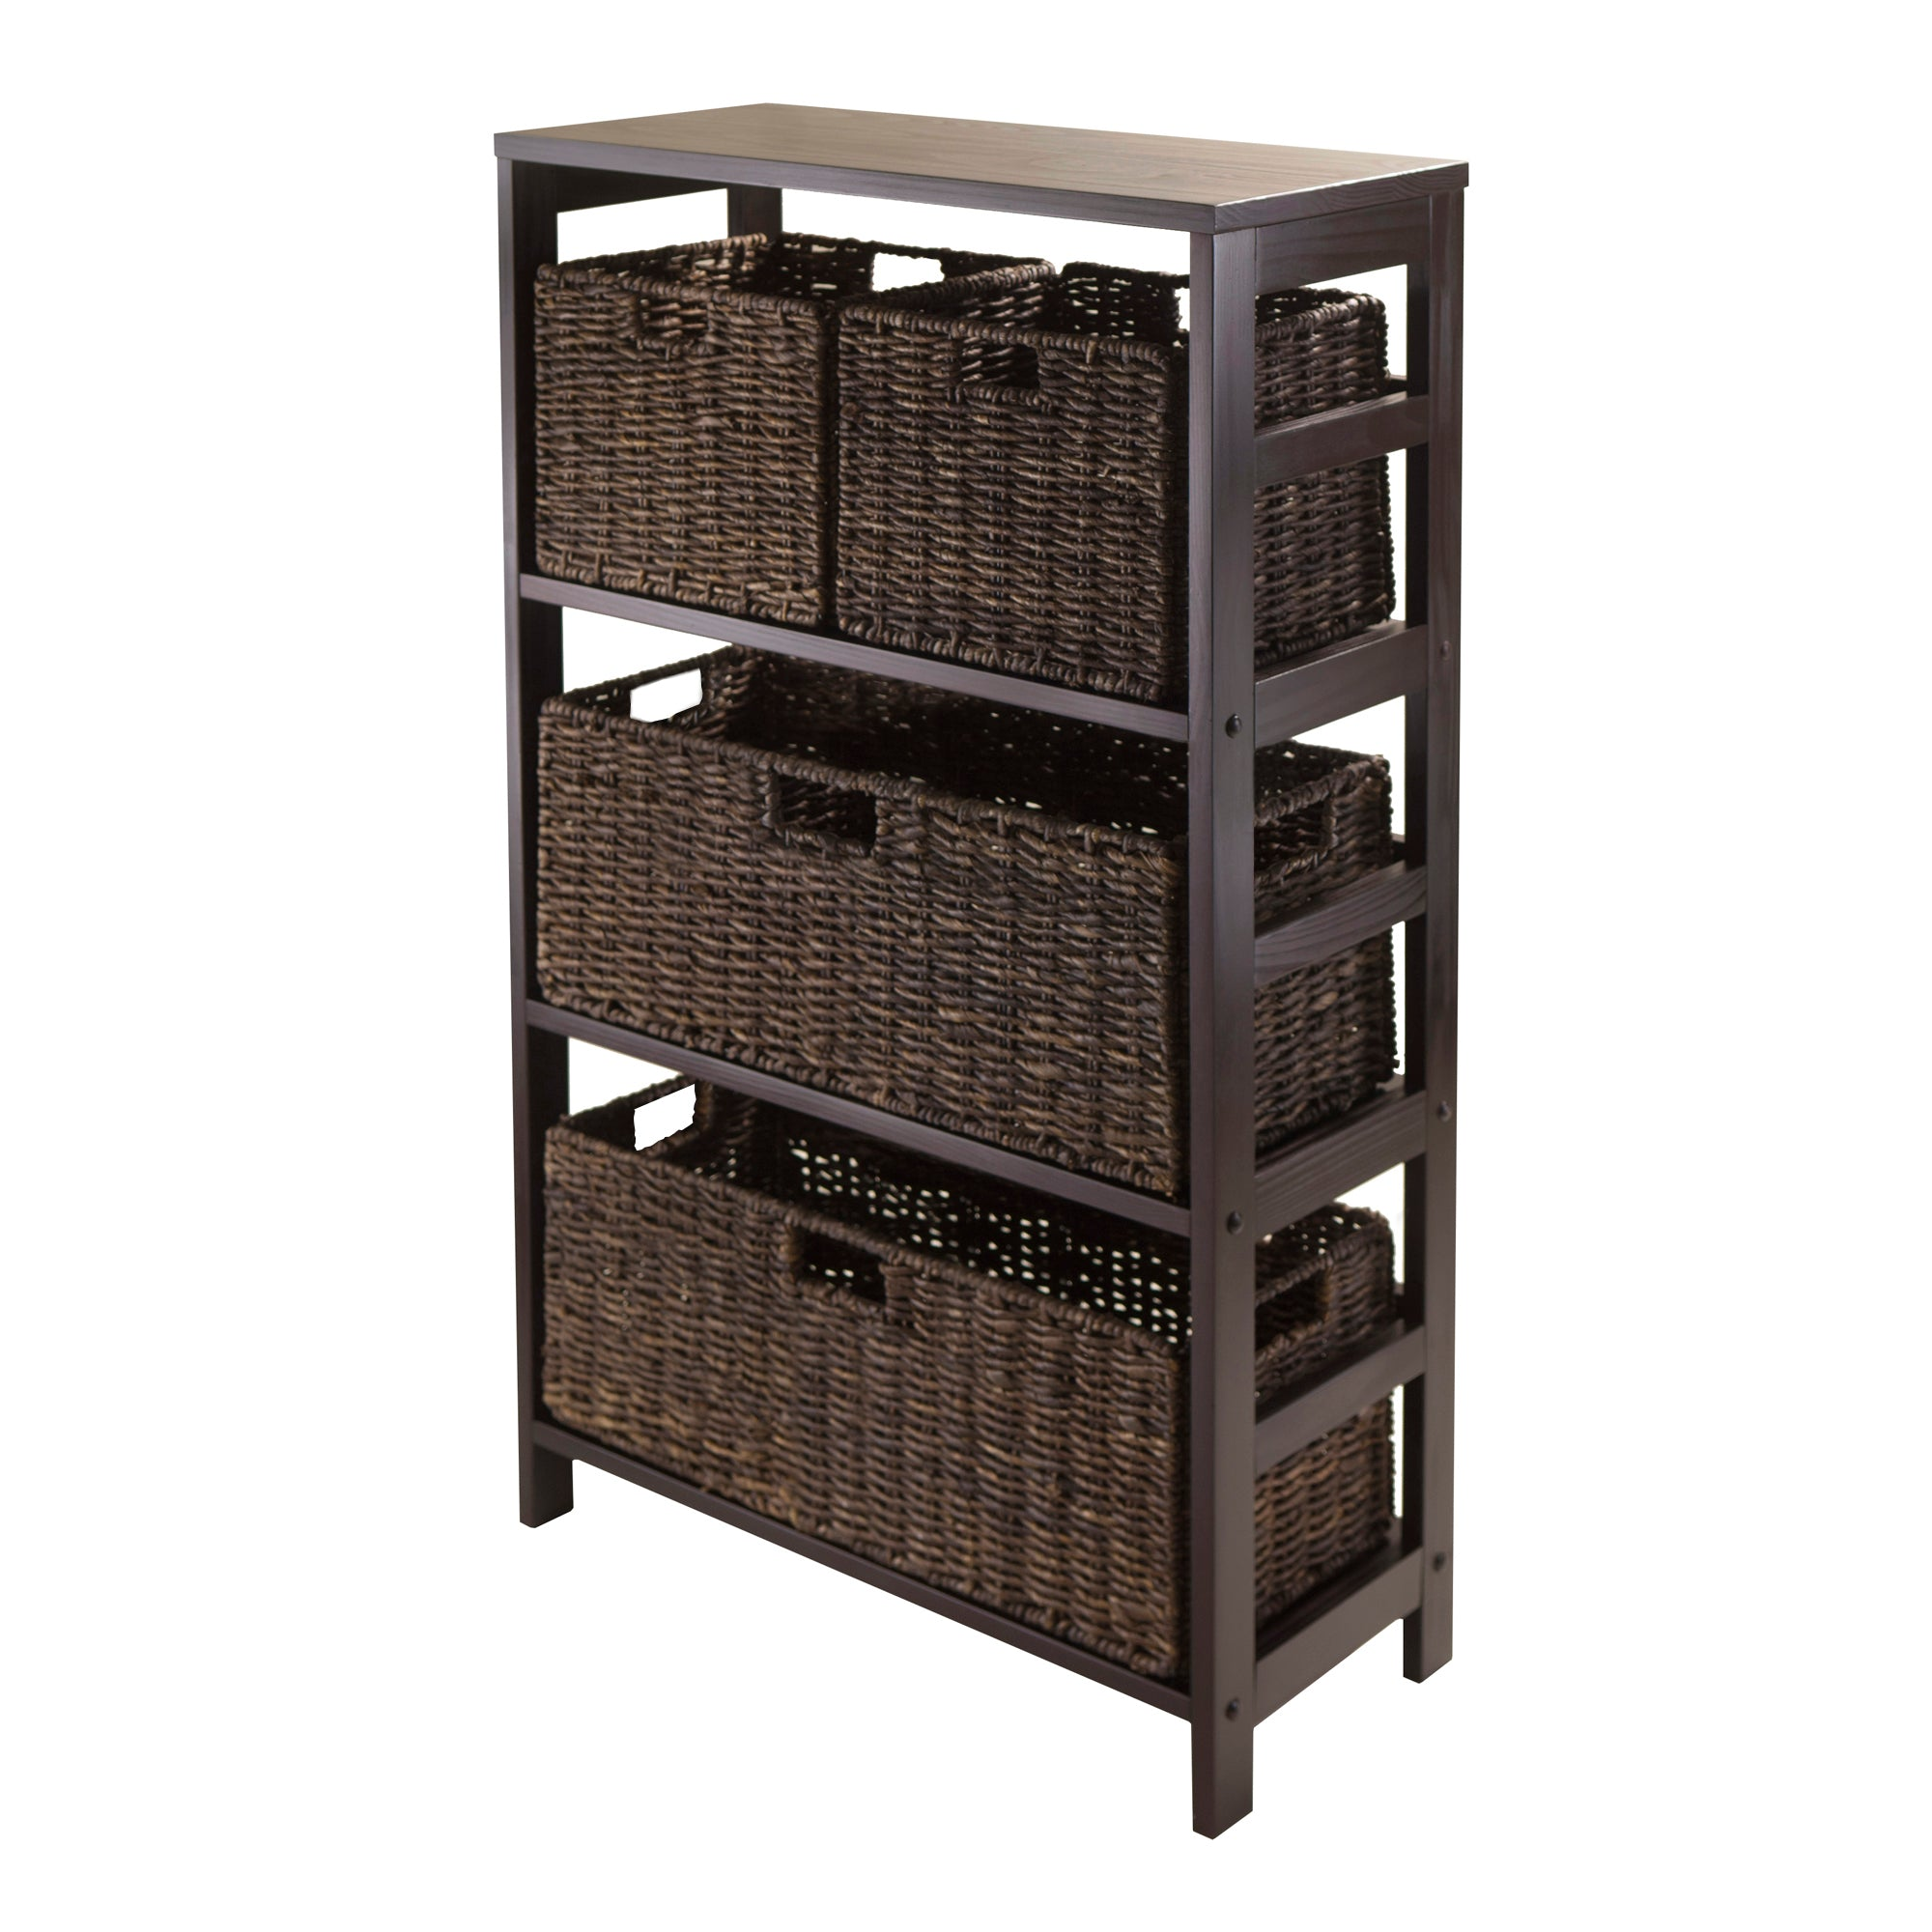 Granville 5-Piece Storage Shelf With 2 Large And 2 Small Foldable Baskets - Pot Racks Plus